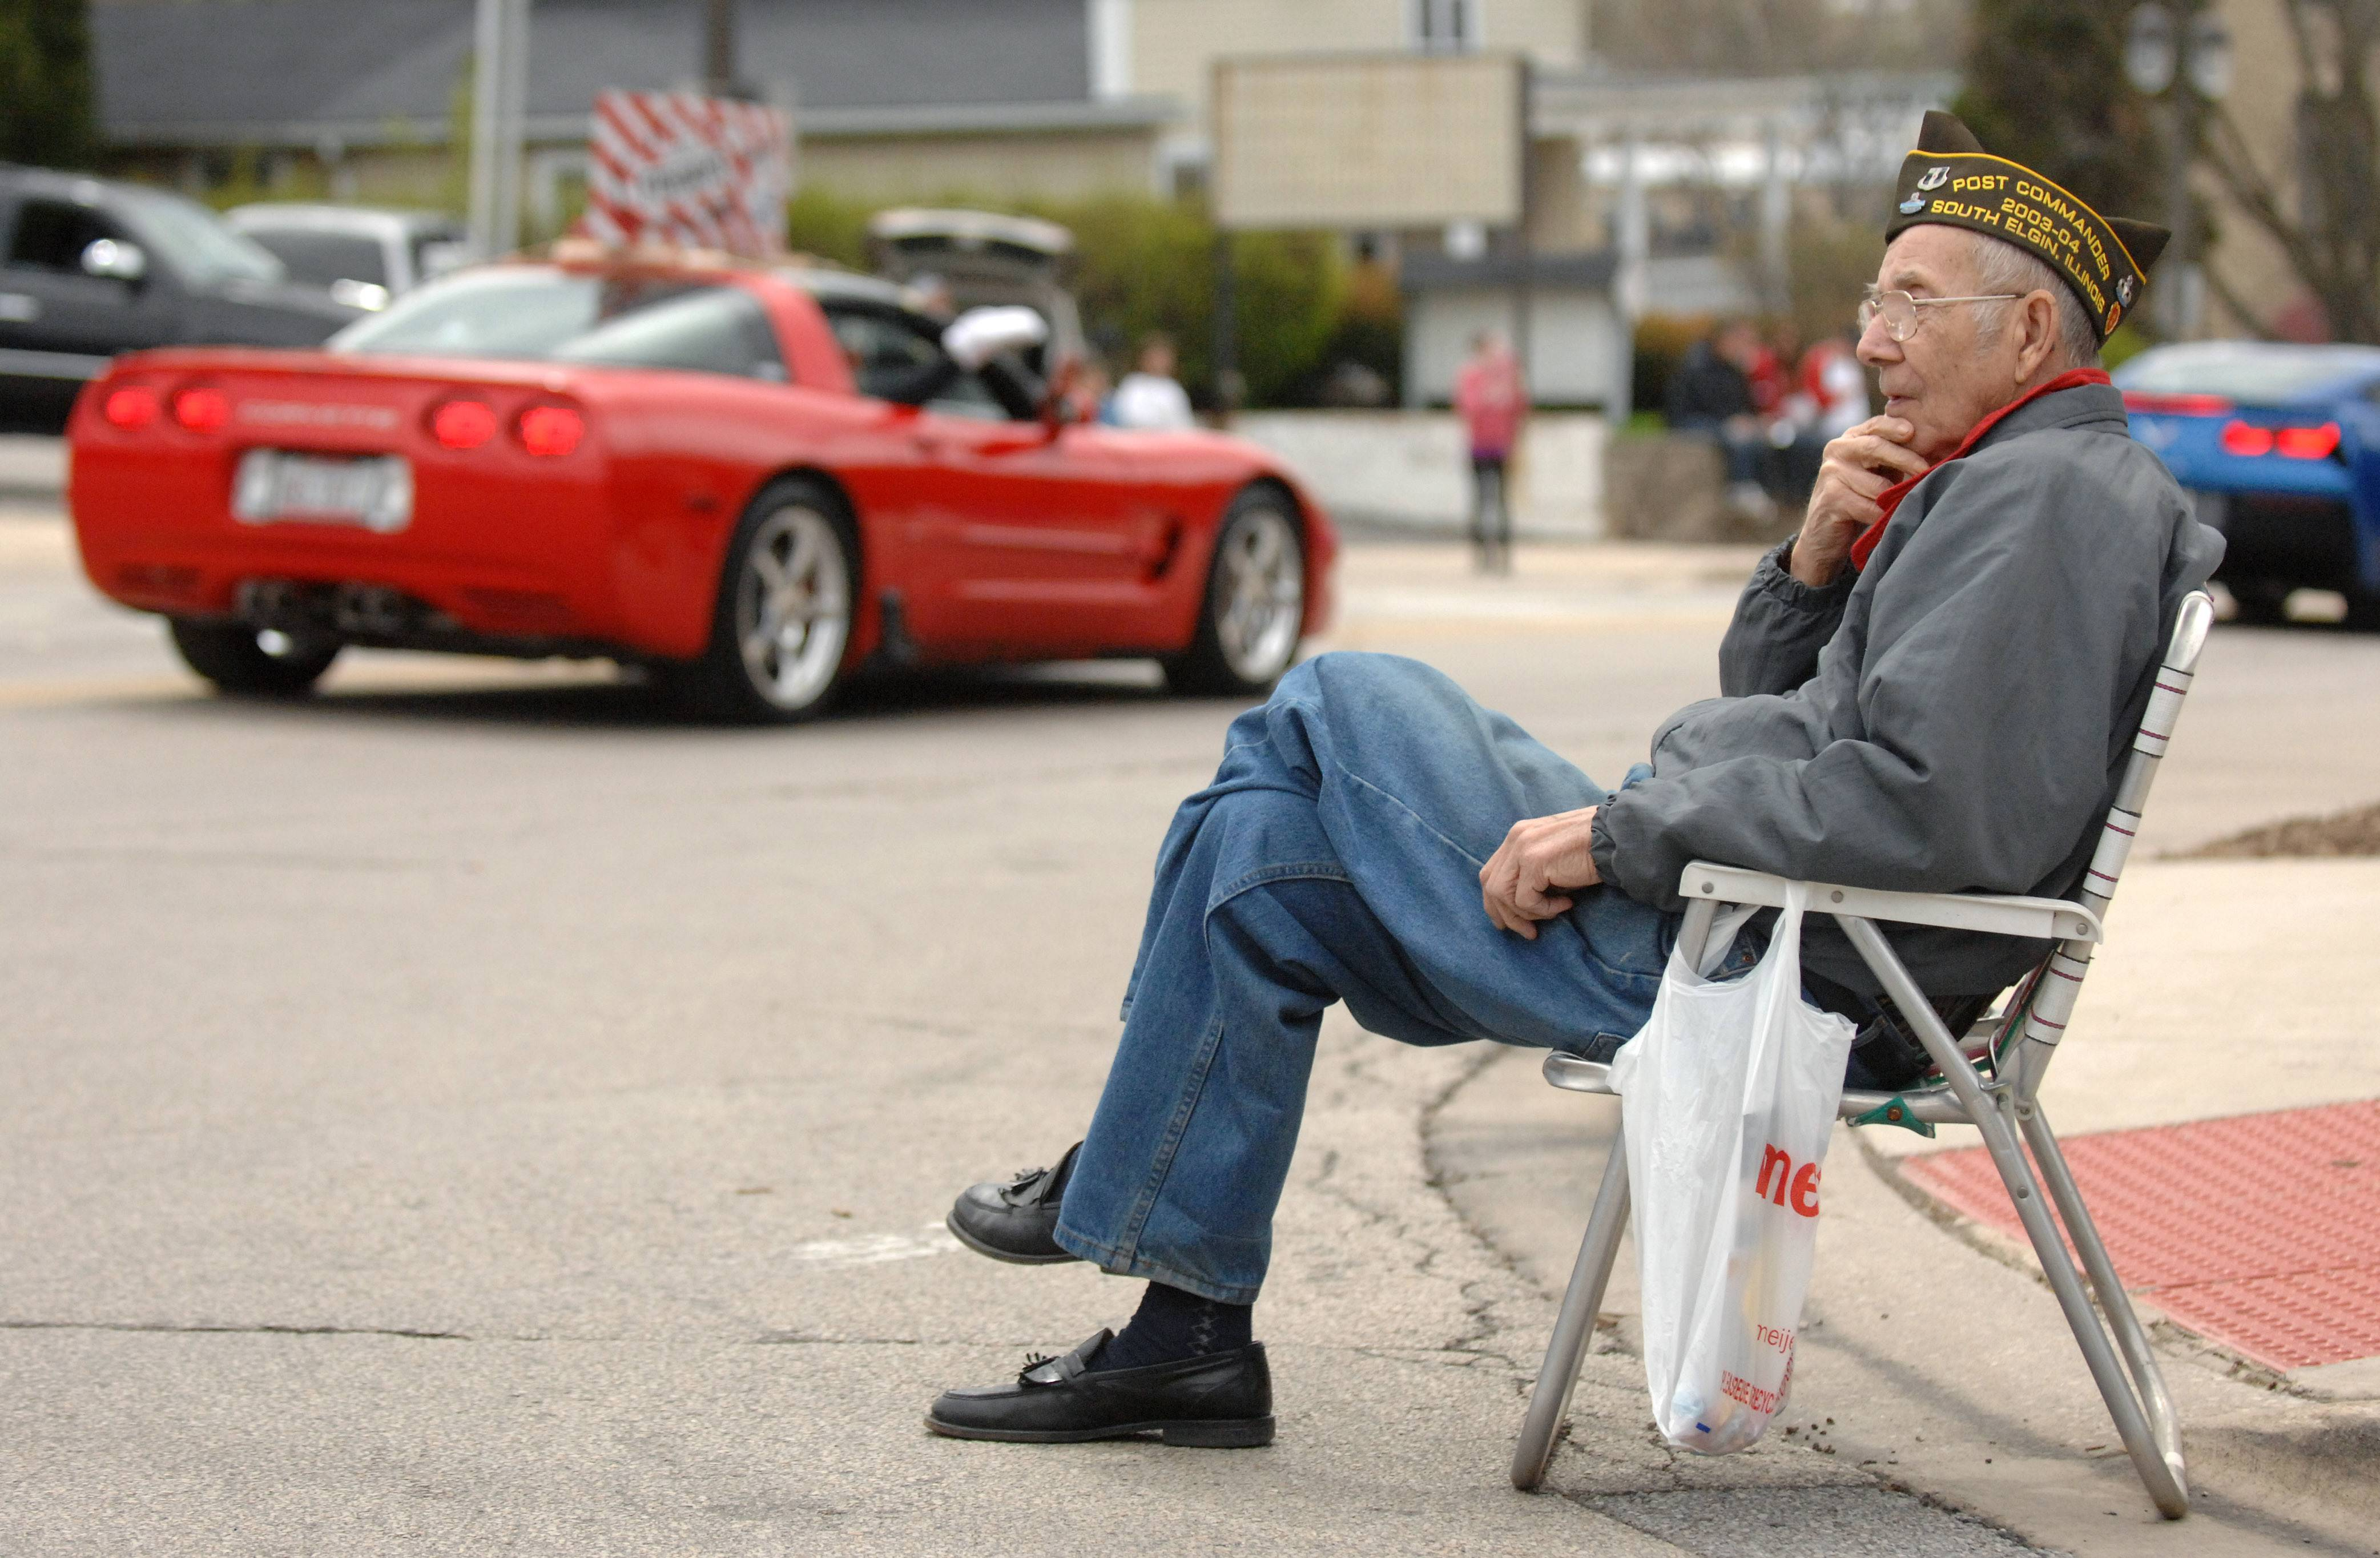 Army veteran of the Korean war, Arnold Bochum, of Elgin, watches the 40th annual Loyalty Day parade in Batavia on Sunday. He has sat at this spot, at the corner of Route 25 and Wilson, for the past 10 years to watch the parade. Bochum served from 1954-56 and served in the Korean War and Germany. He was collecting candy for a neighbor's child.